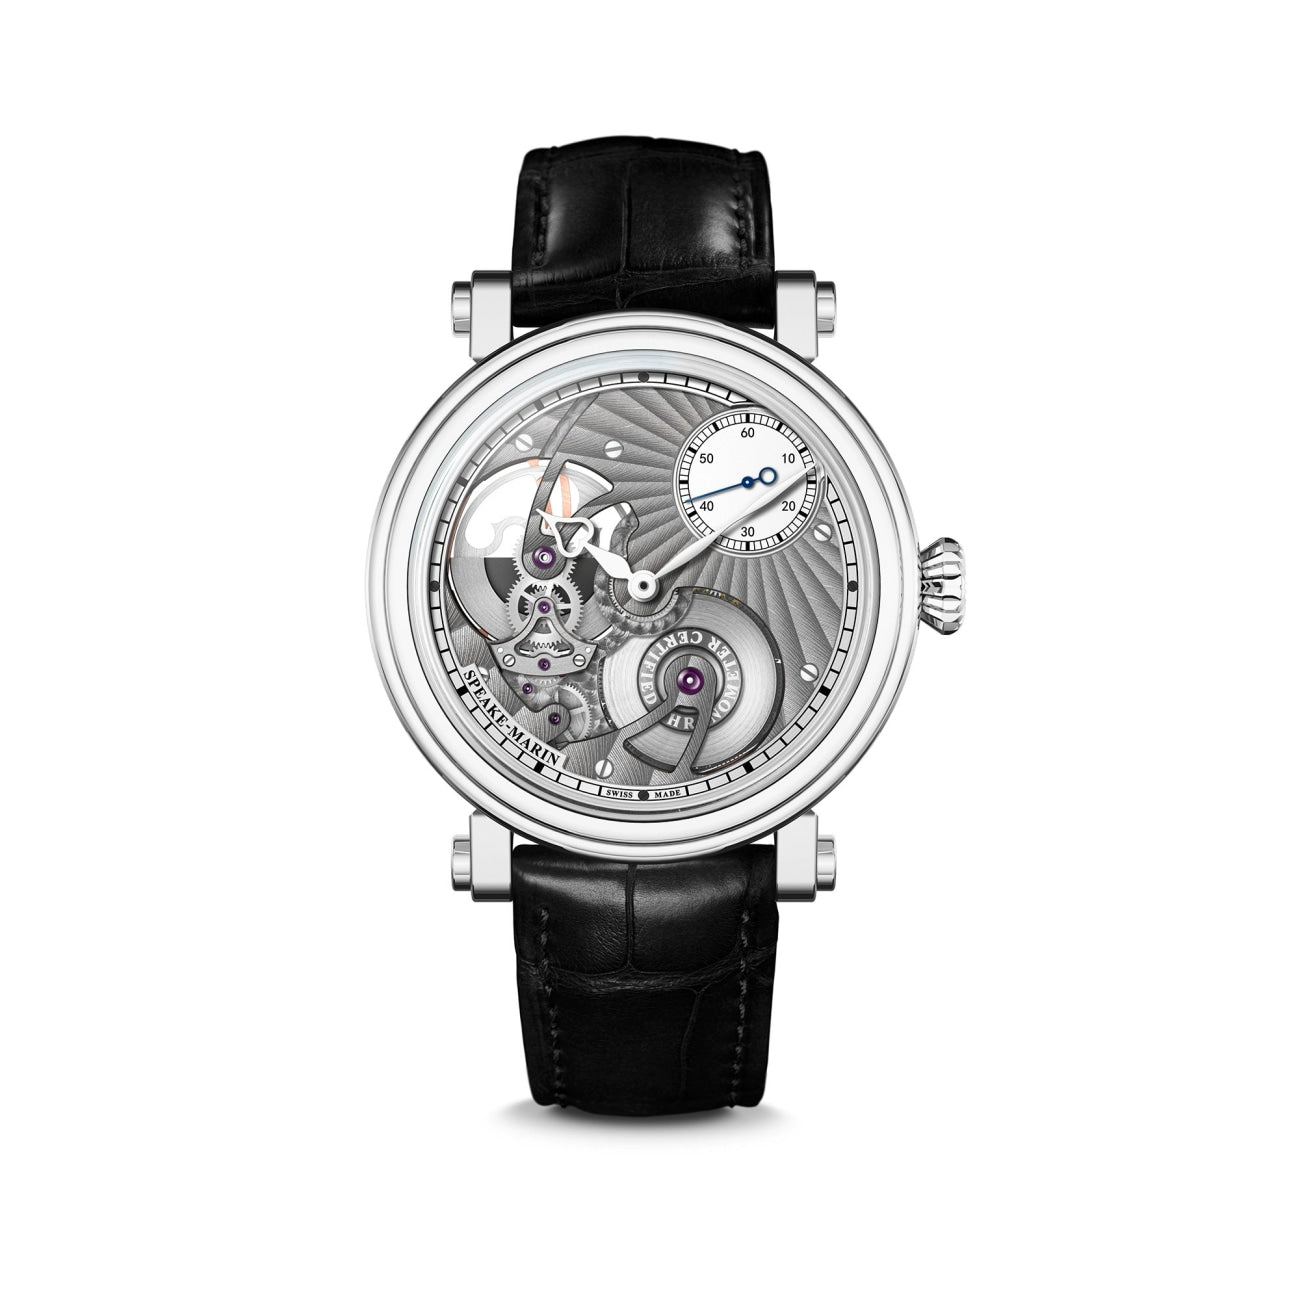 Speake Marin Watches - One&Two Openworked Titanium 42mm | Manfredi Jewels